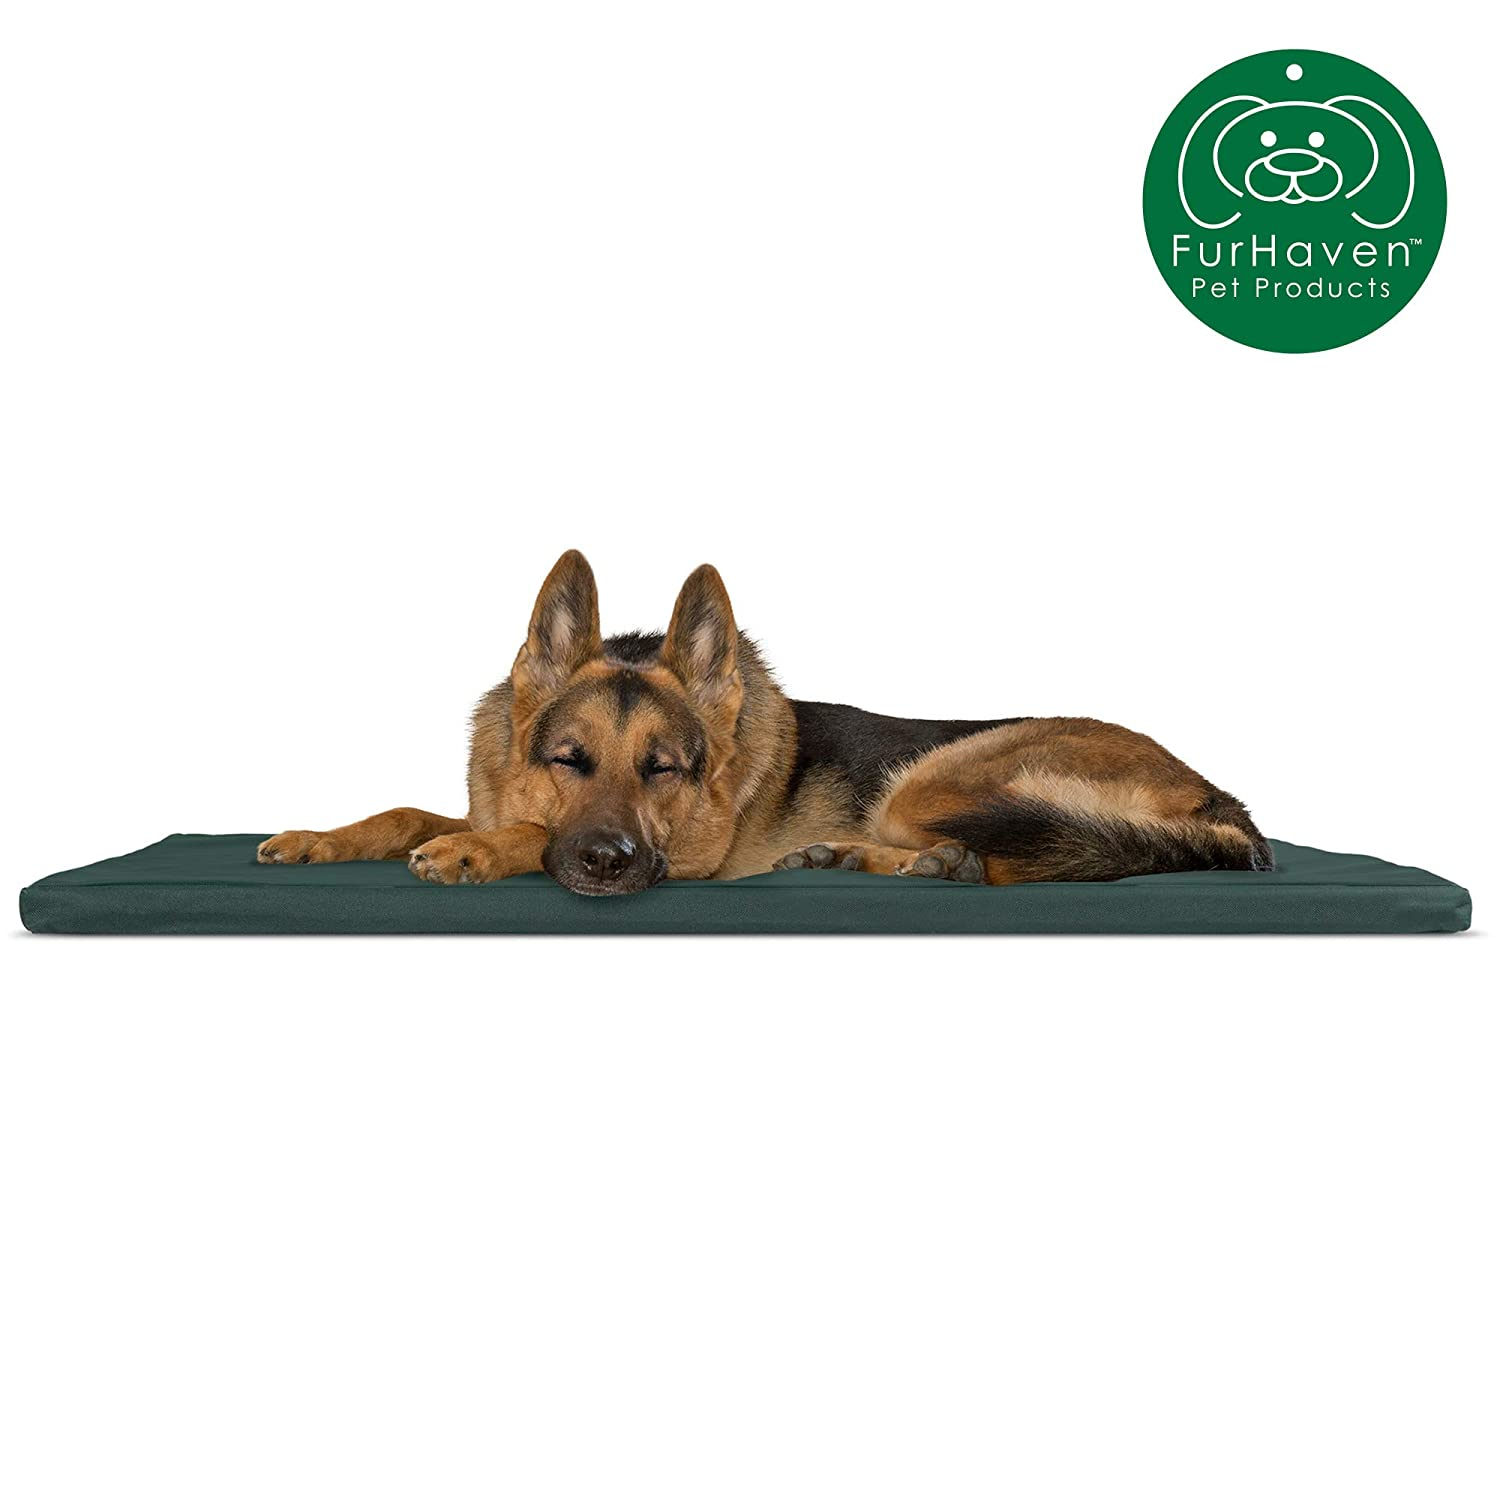 Furhaven Pet Dog Bed Kennel Pad | Reversible Two-Tone Water-Resistant Crate or Kennel Foam Mat Pet Bed for Dogs & Cats - Available in Multiple Colors & Styles